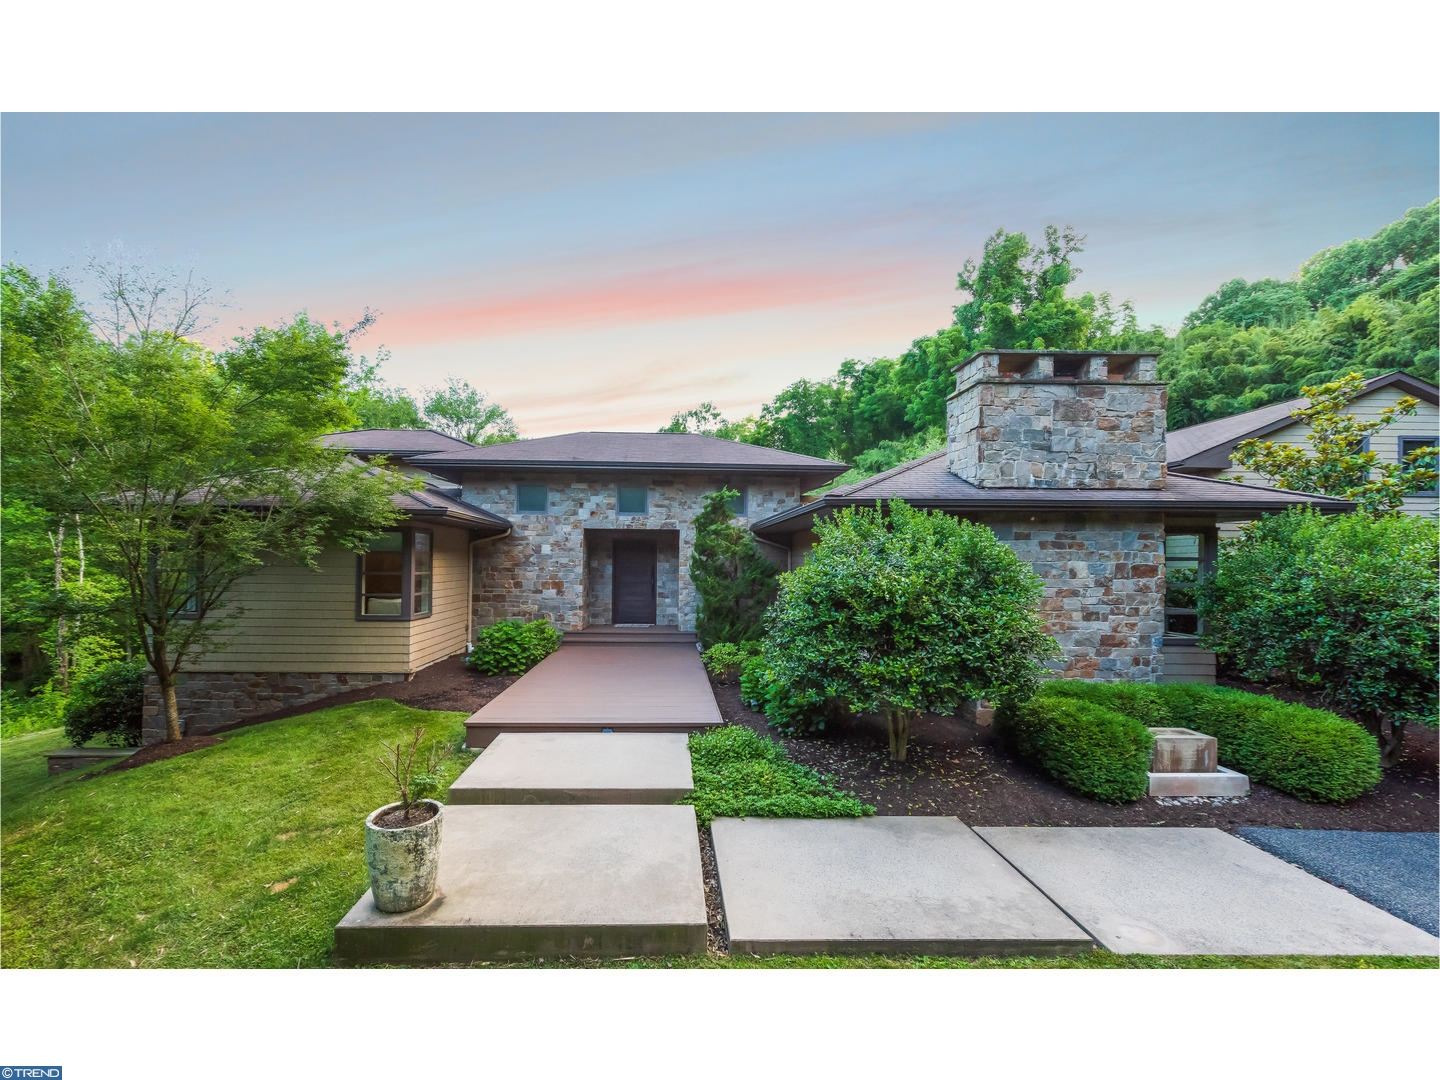 121 BULLOCK RD, CHADDS FORD, PA 19317